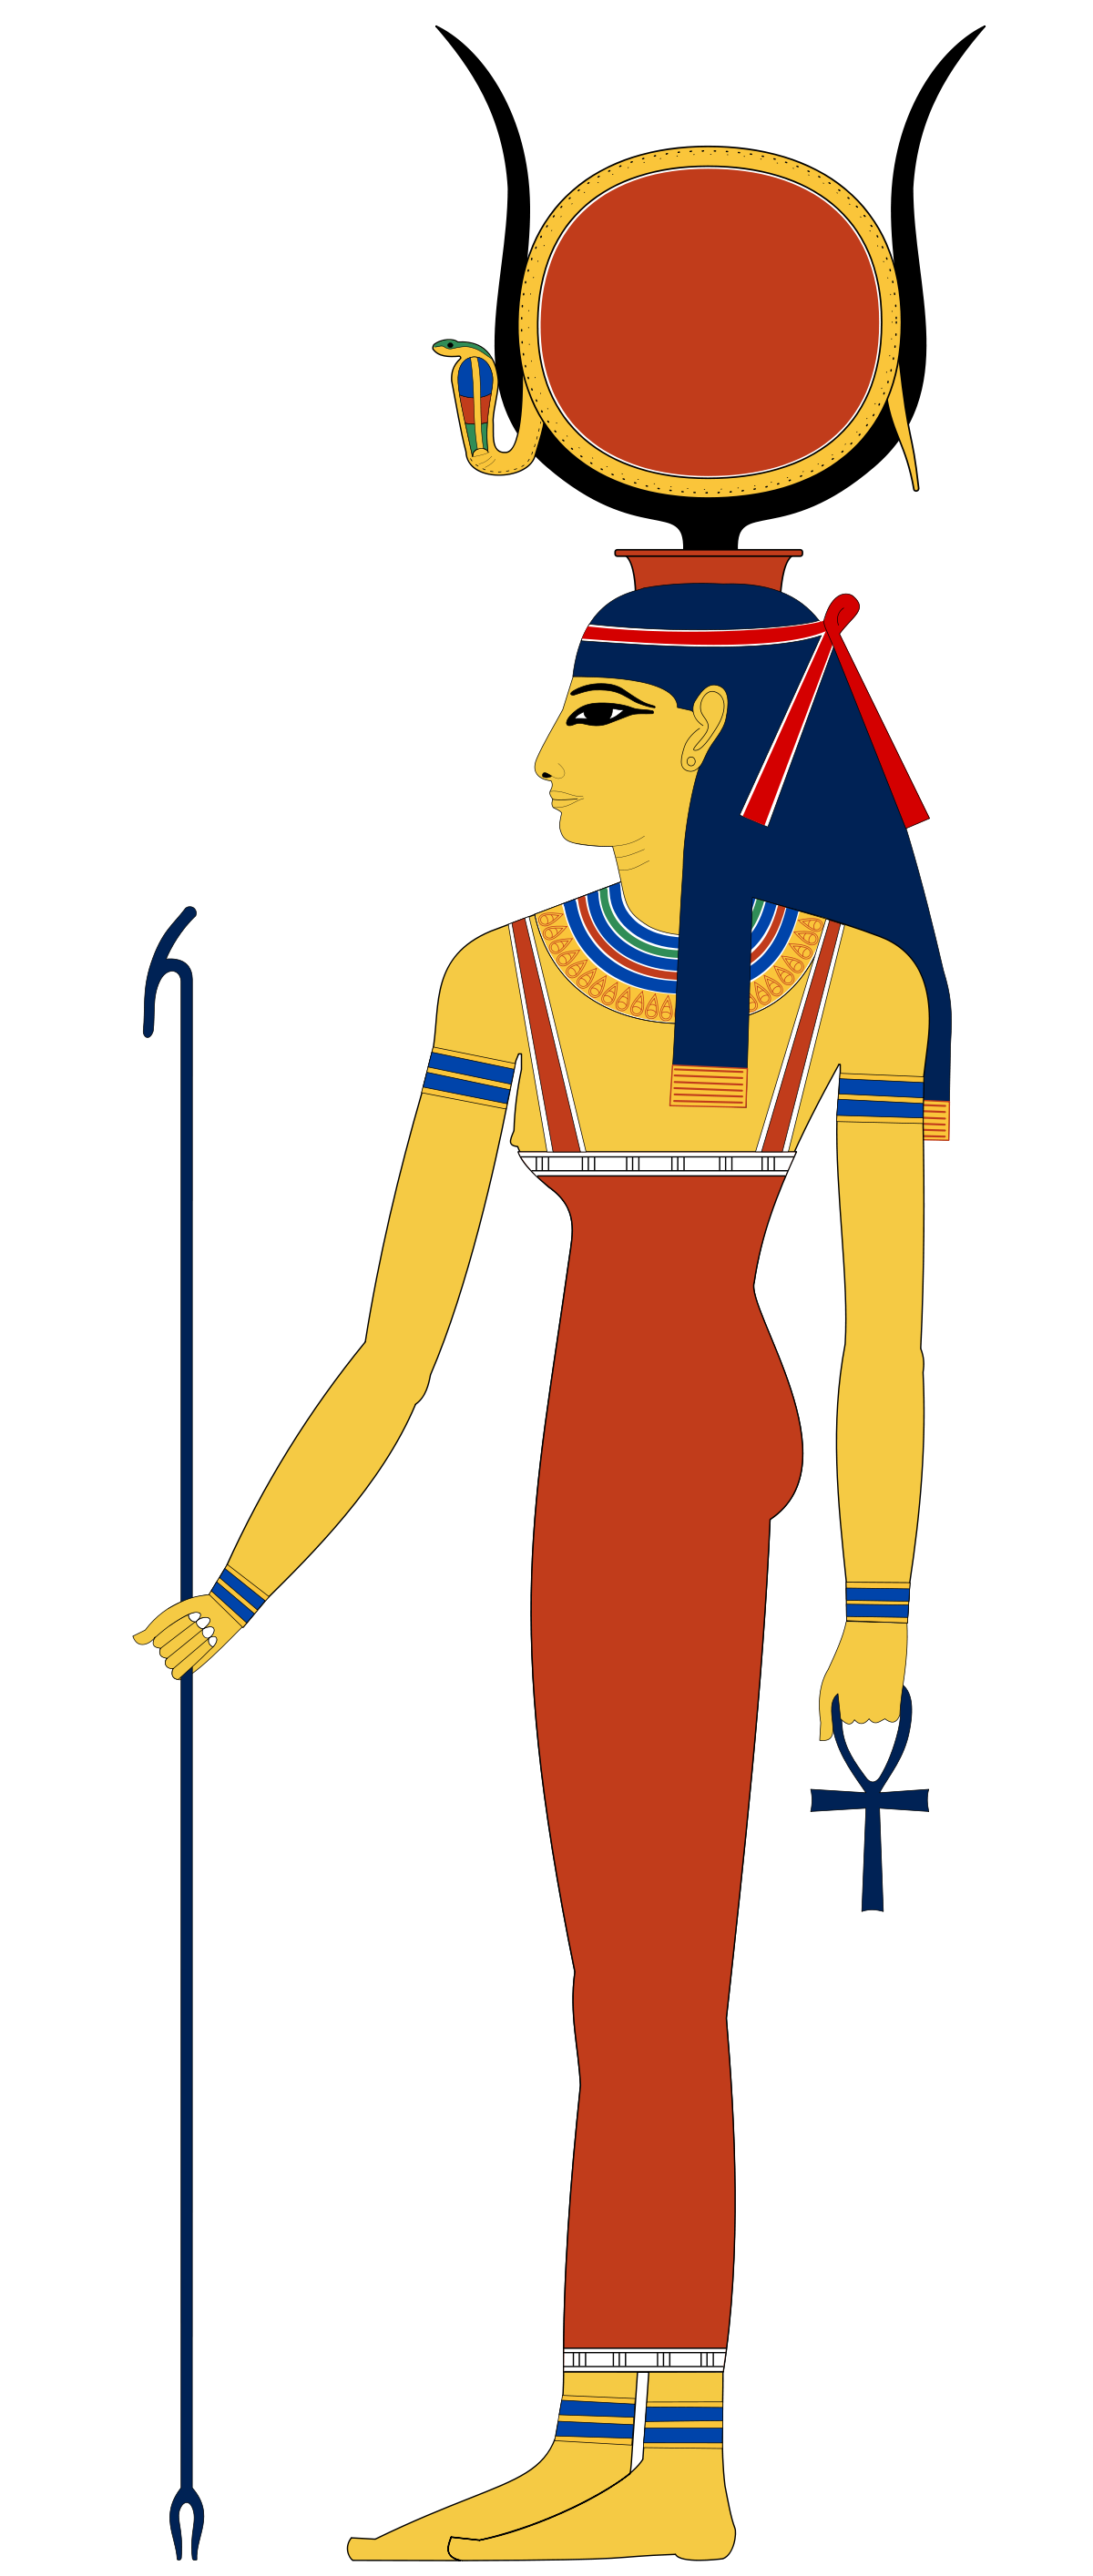 Man in house clipart clipart royalty free download House Clipart ancient egyptian - Free Clipart on Dumielauxepices.net clipart royalty free download